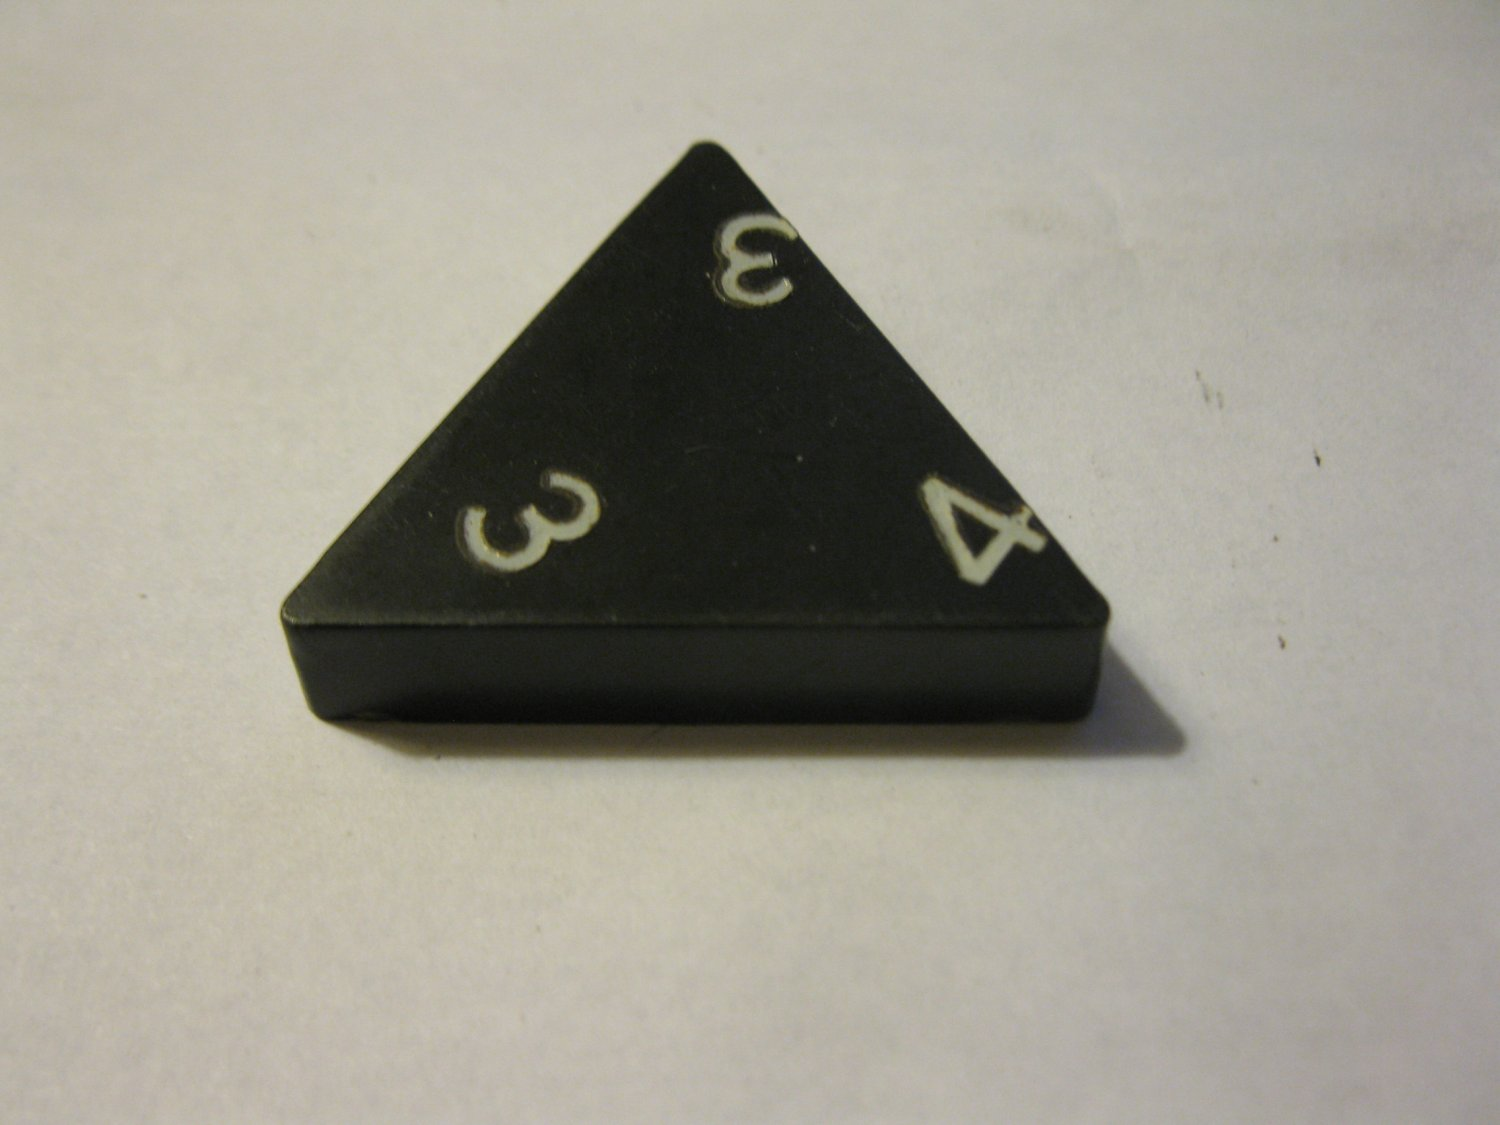 1985 Tri-ominoes Board Game Piece: Triangle # 3-3-4